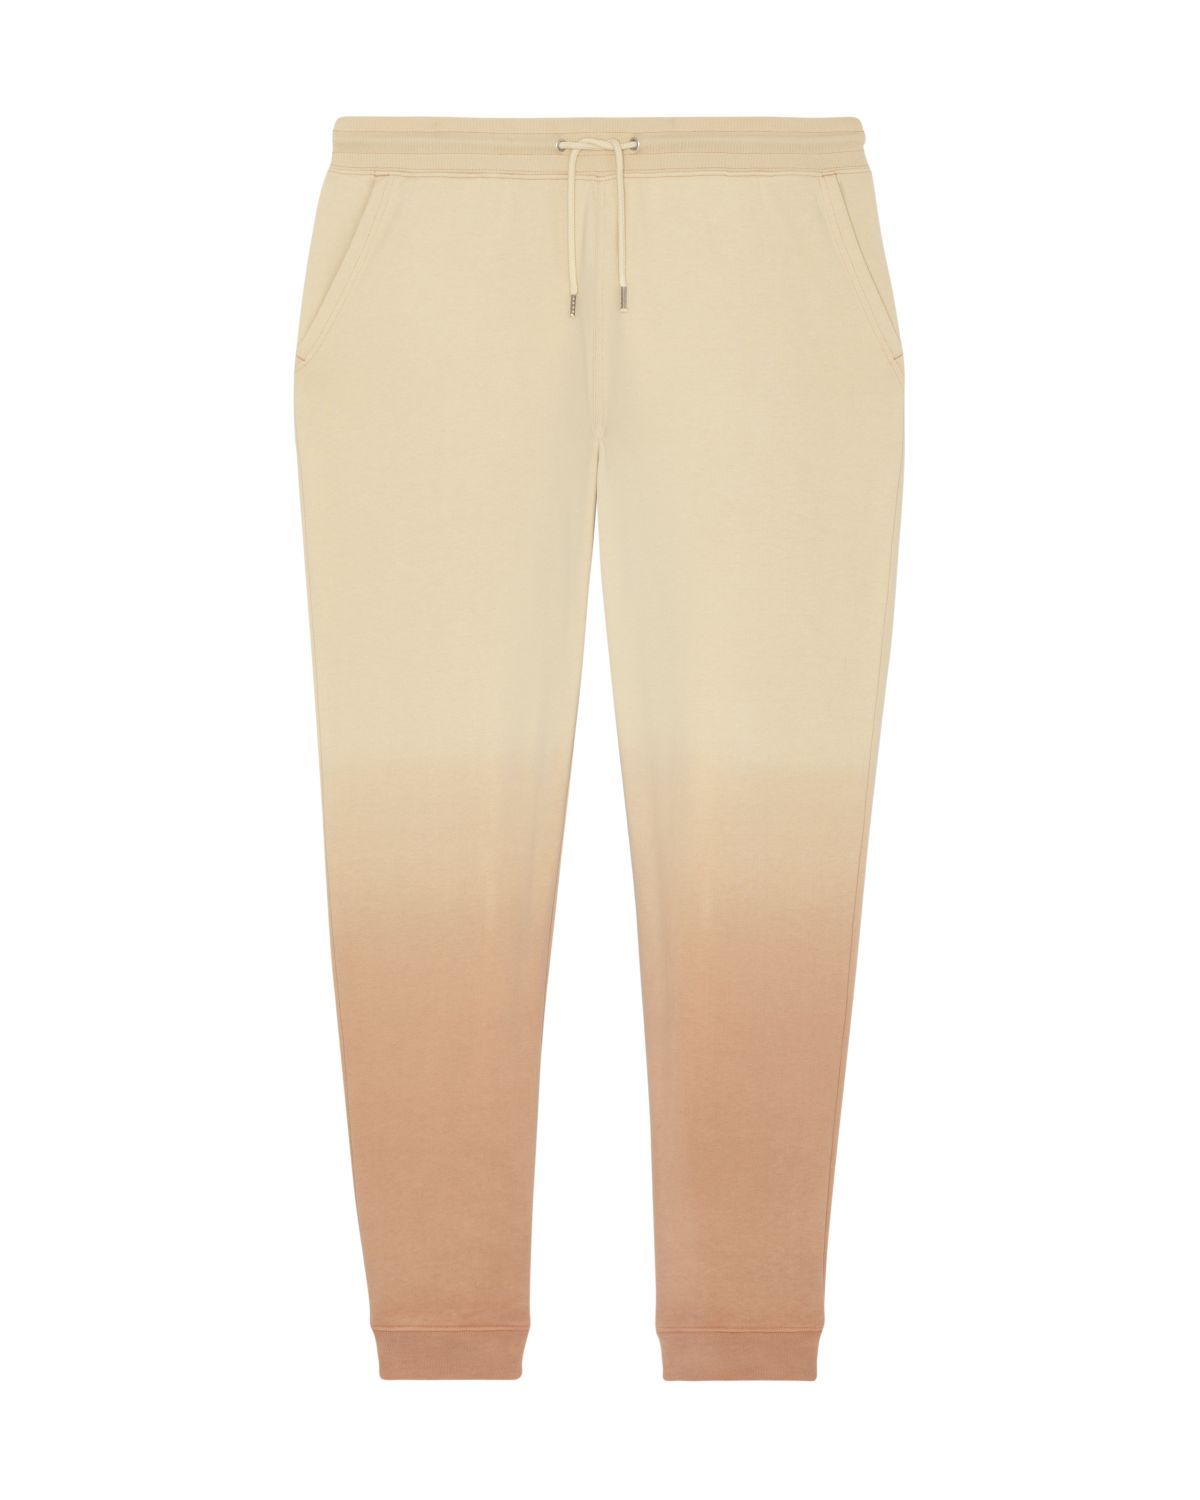 DIP DYE SWEATPANTS - (WOMEN/MEN)